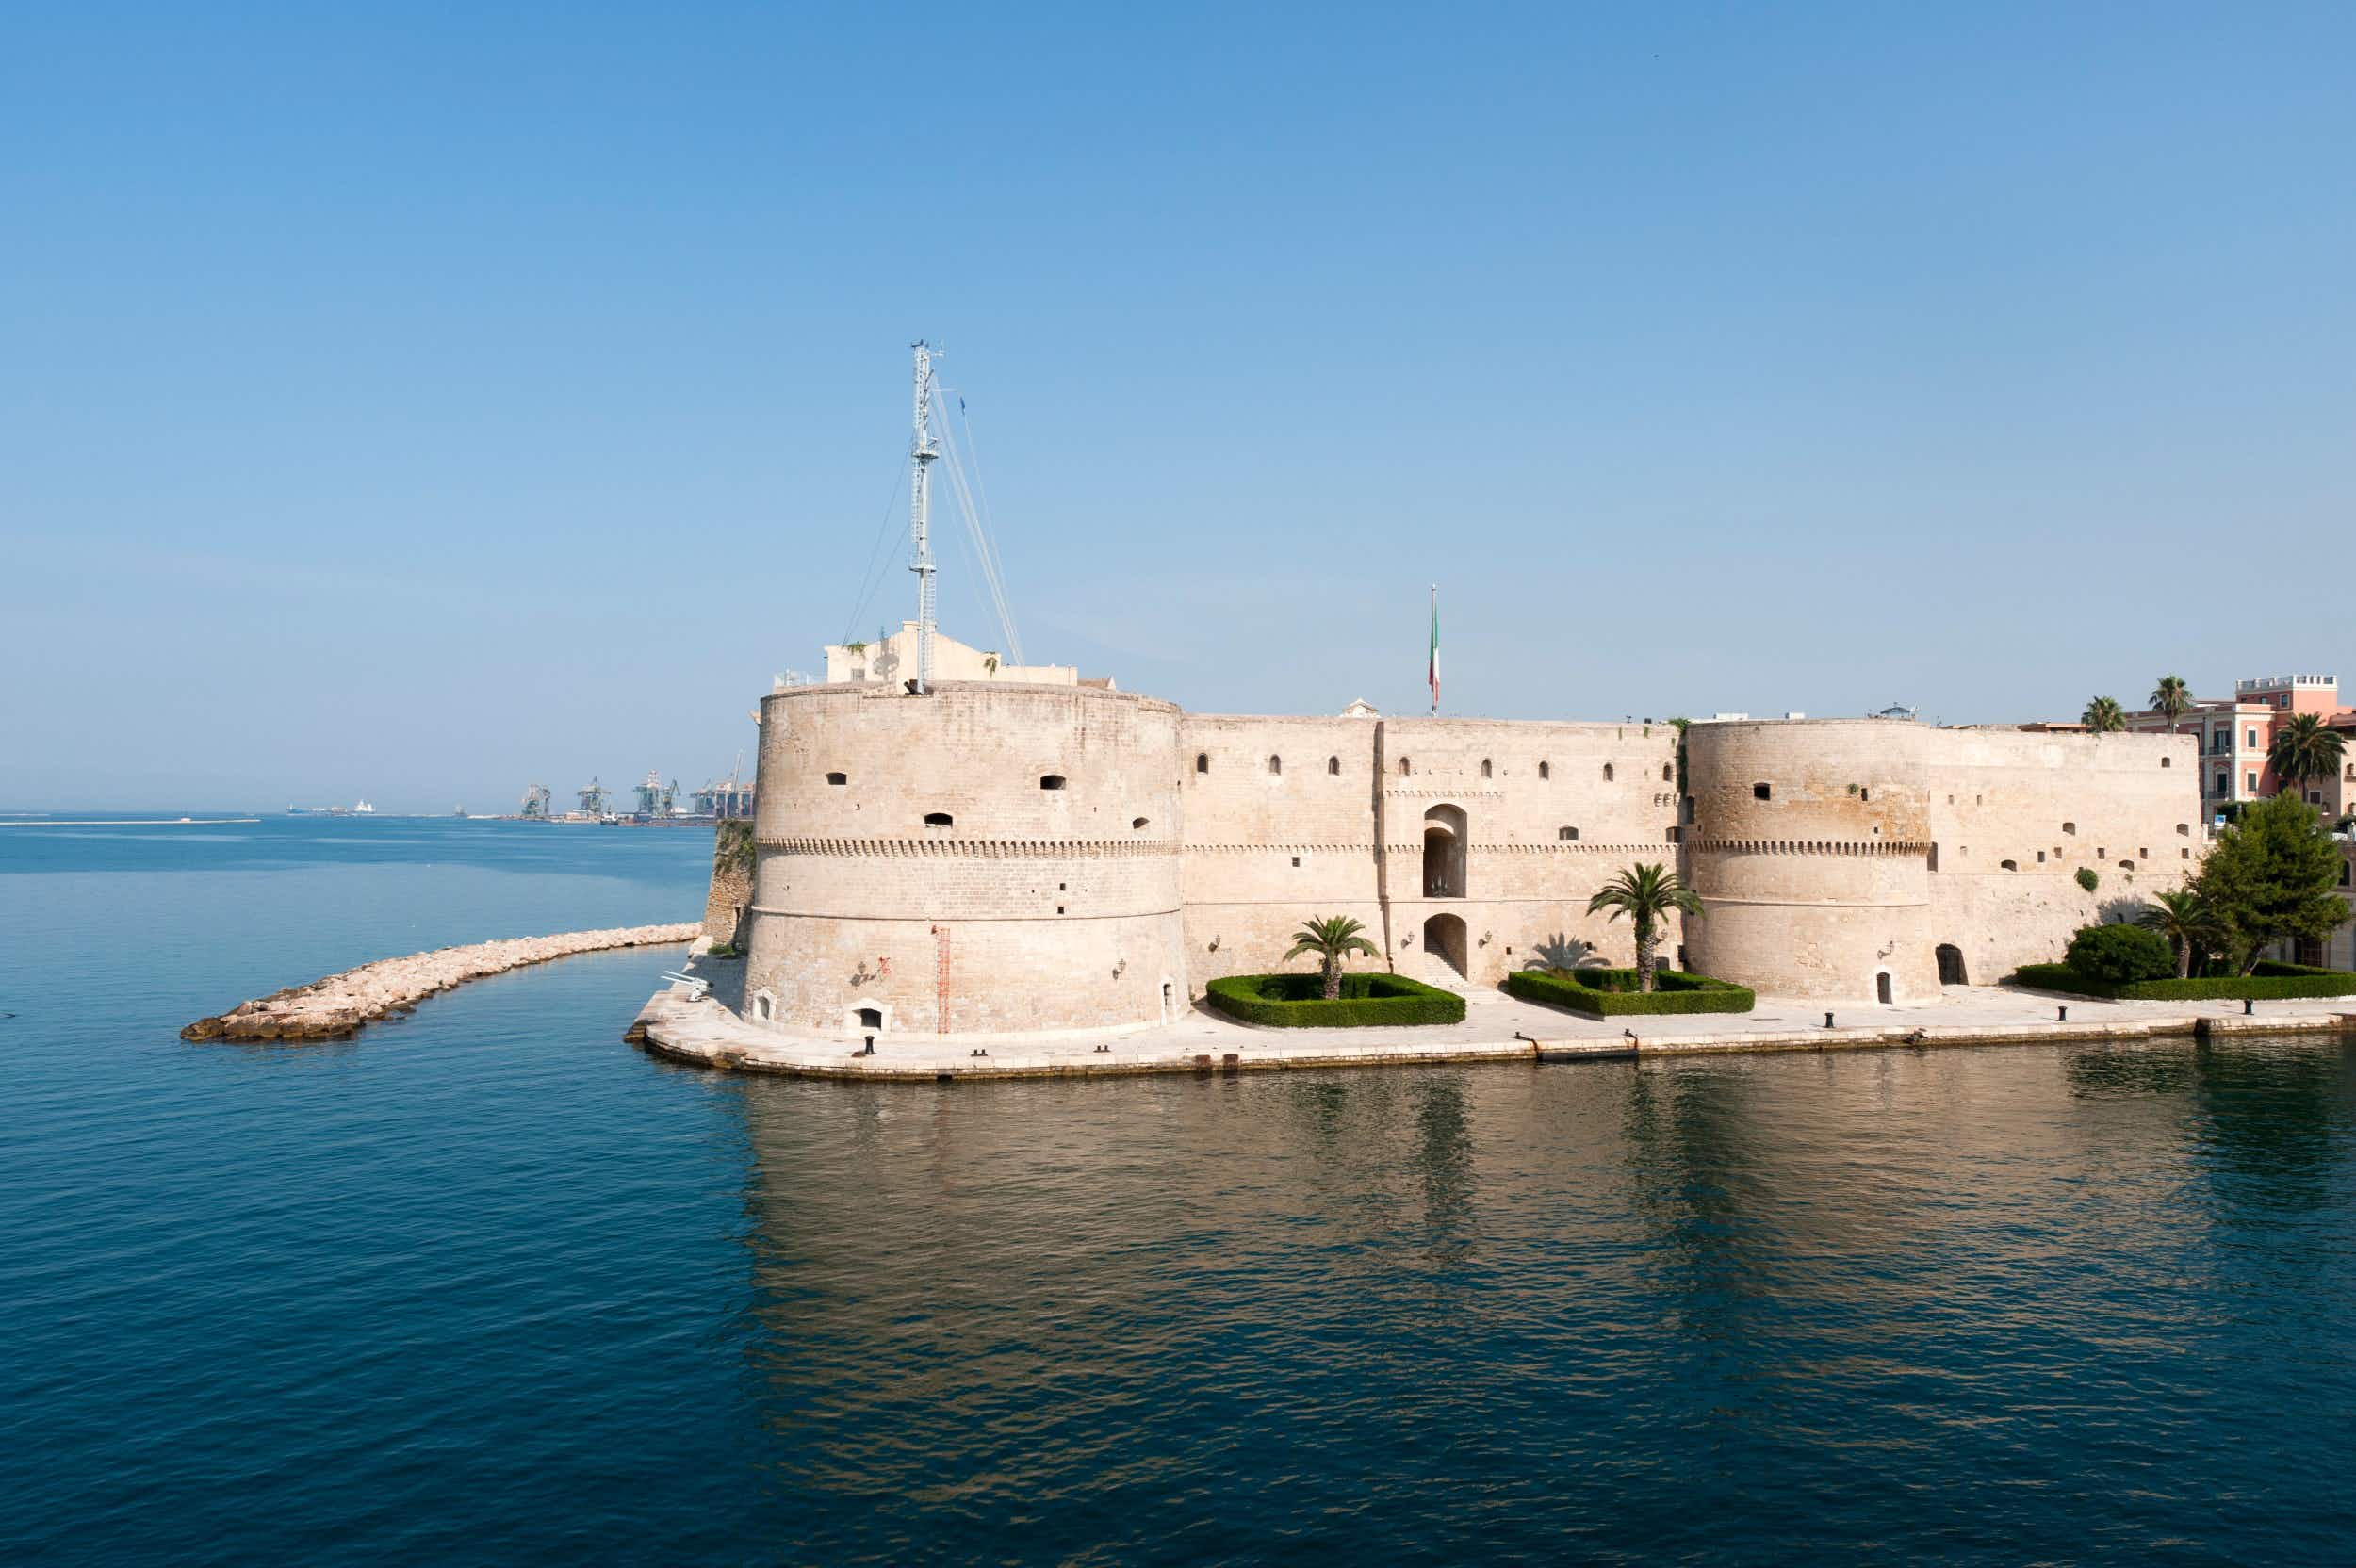 The famous 15th century Castello Aragonese in Taranto © Clodio/Getty Images